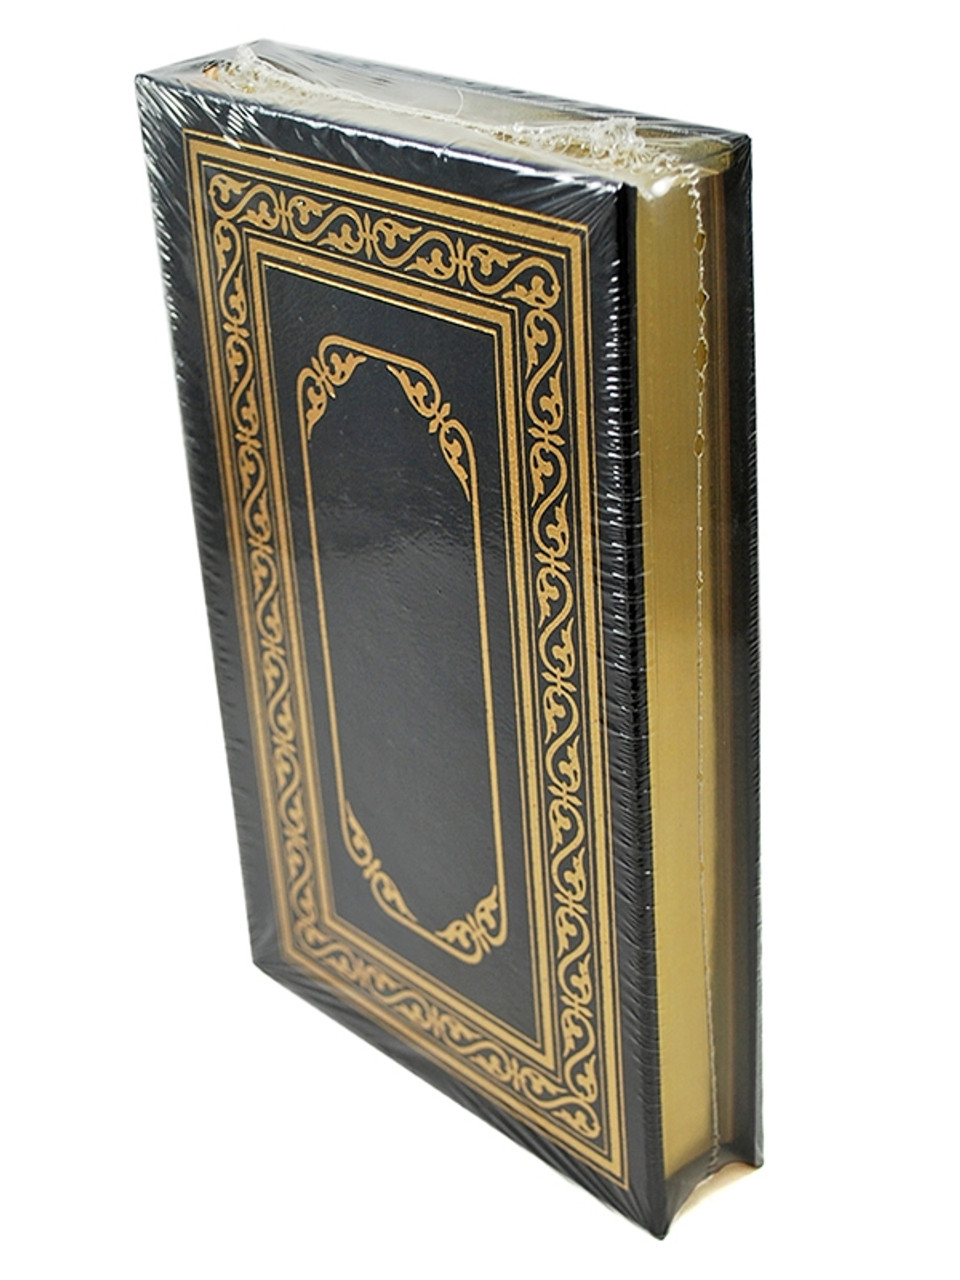 Easton Press Thomas Keneally Schindler's List Signed Limited Edition Leather Bound Book